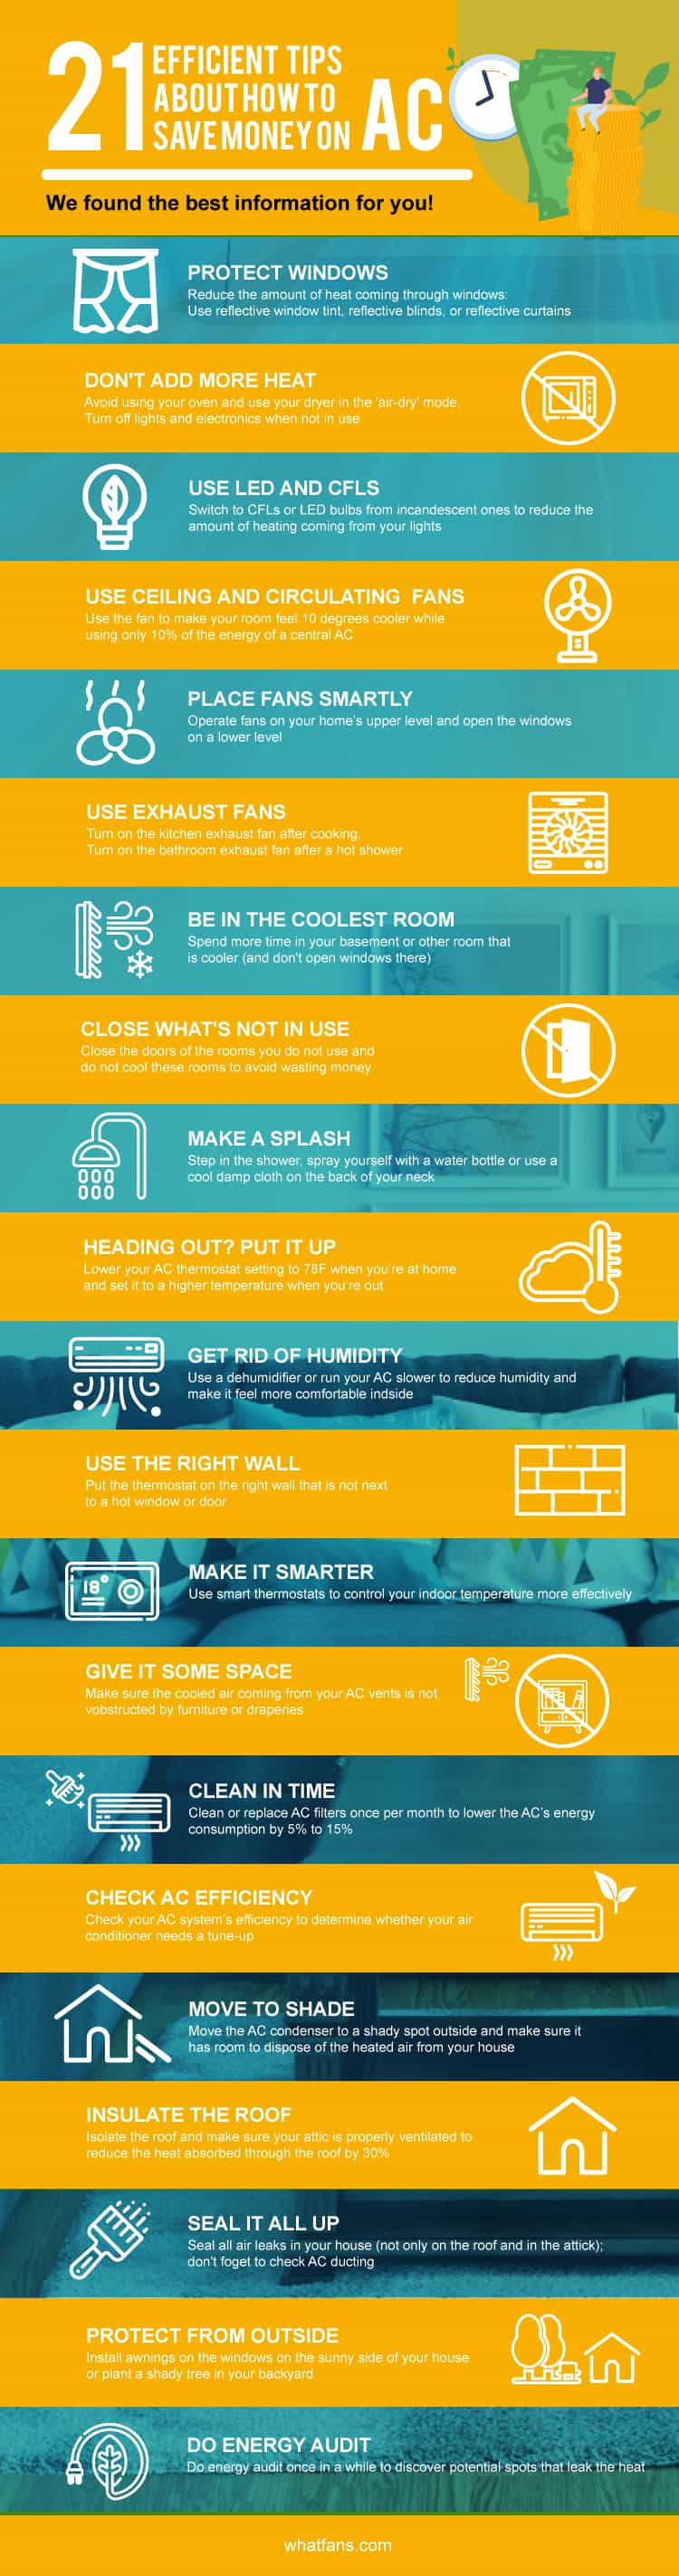 21 efficient tips about how to save money on AC infographic #energysaving #savingmoney #summertips #energysavingtips #coolingtips #homeimprovement #airconditioning #fan #fans #whatfans  #Infographic